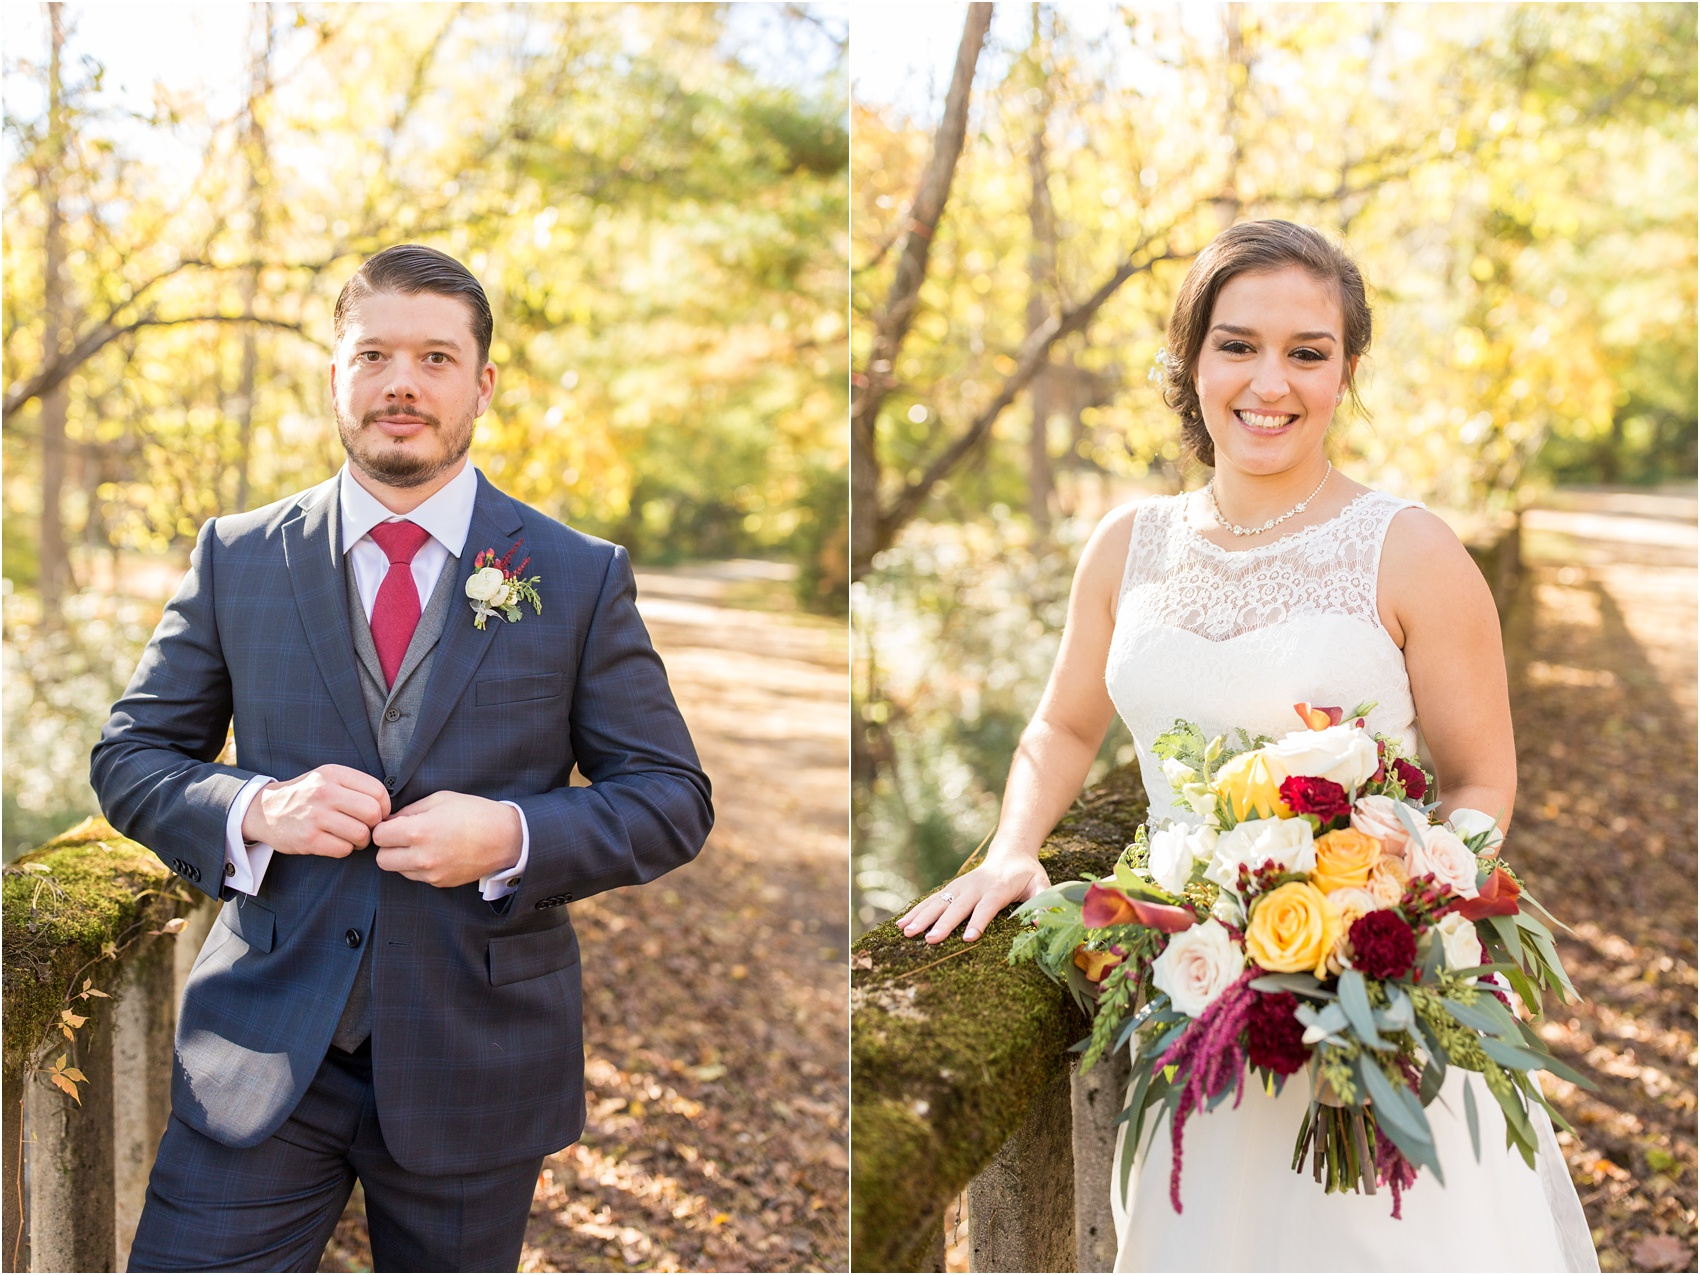 Savannah Eve Photography- McGeary-Epp Wedding- Sneak Peek-76.jpg